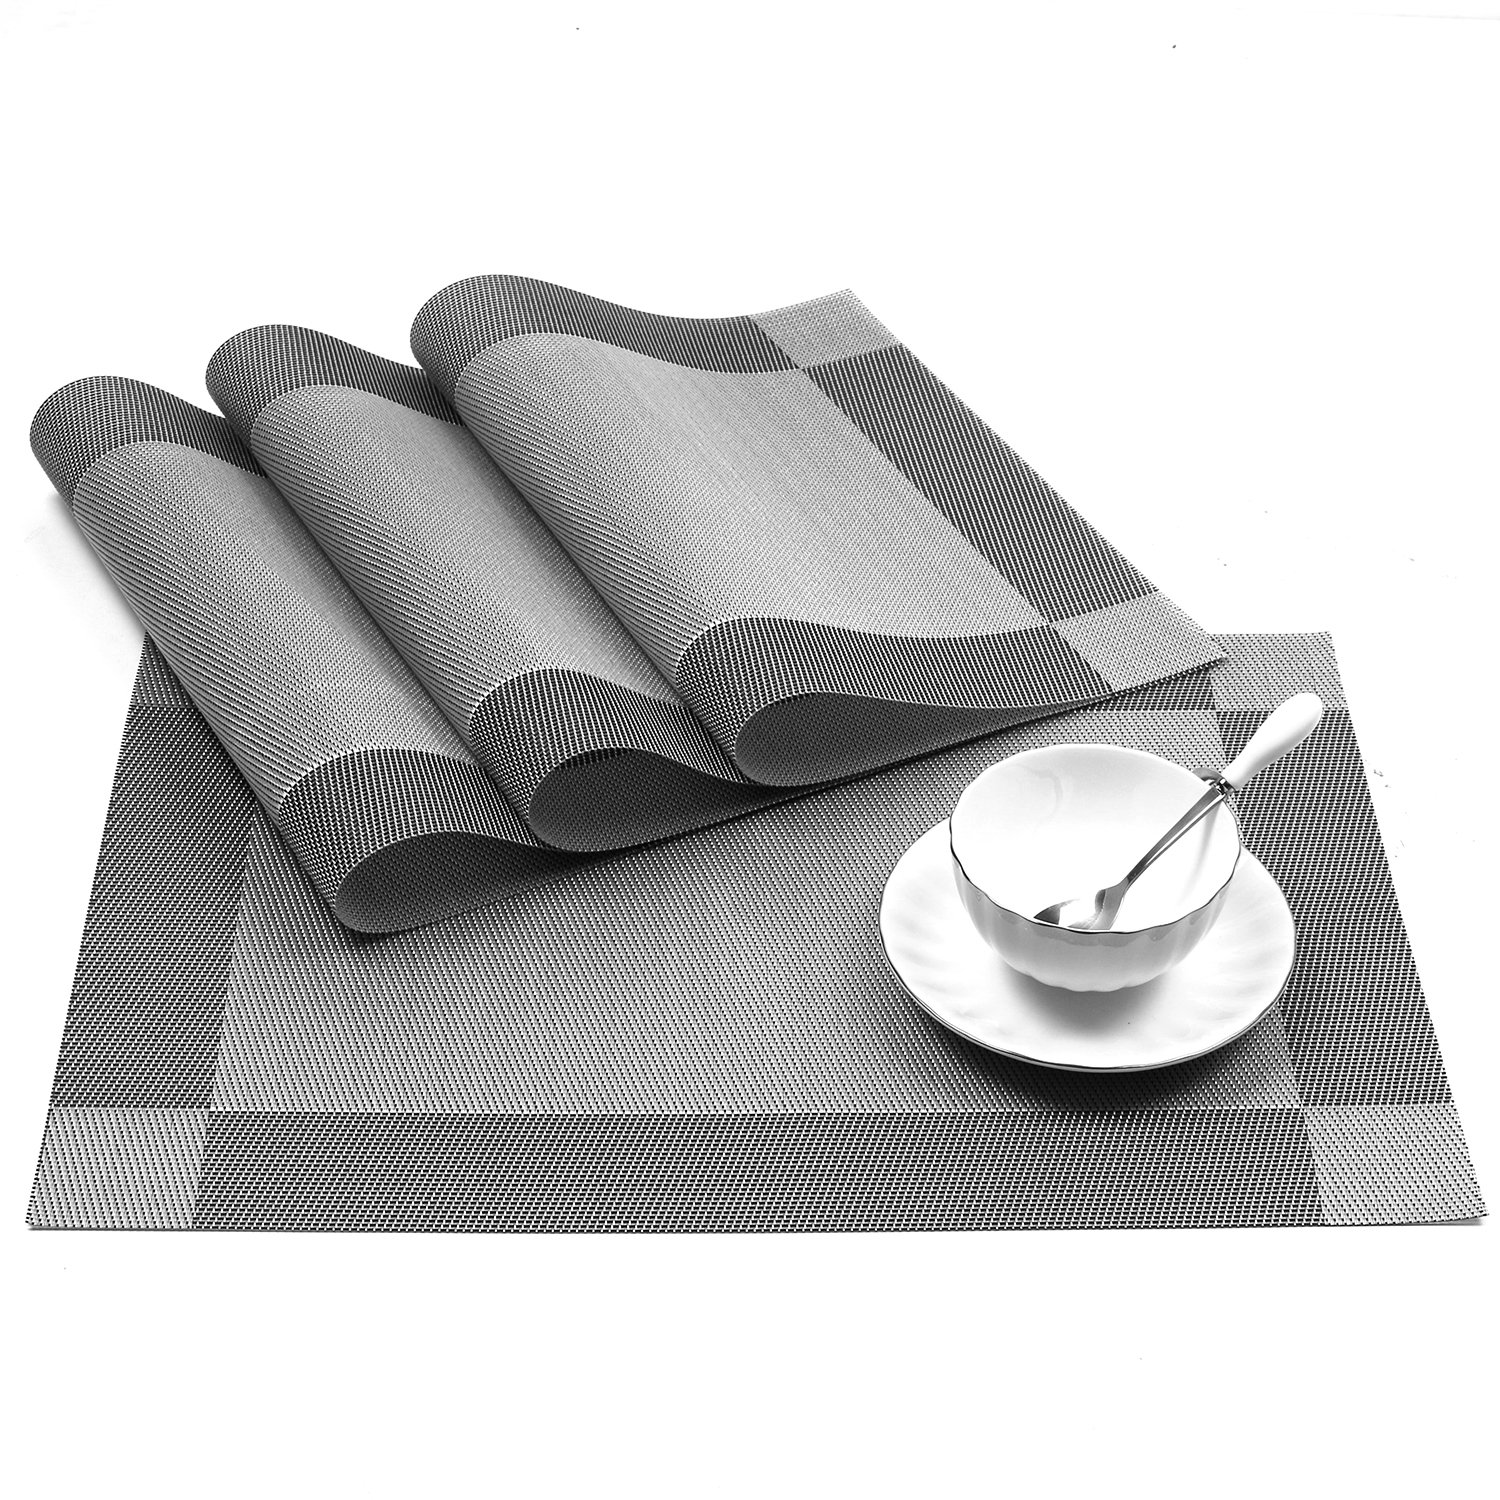 "U'Artlines 18""x12"" PVC Placemats for Dining Table Stain-Resistant Woven Vinyl Kitchen Placemat for Thanks Giving Holiday Vinyl Placemats Set of 4 (Silver-Gray)"